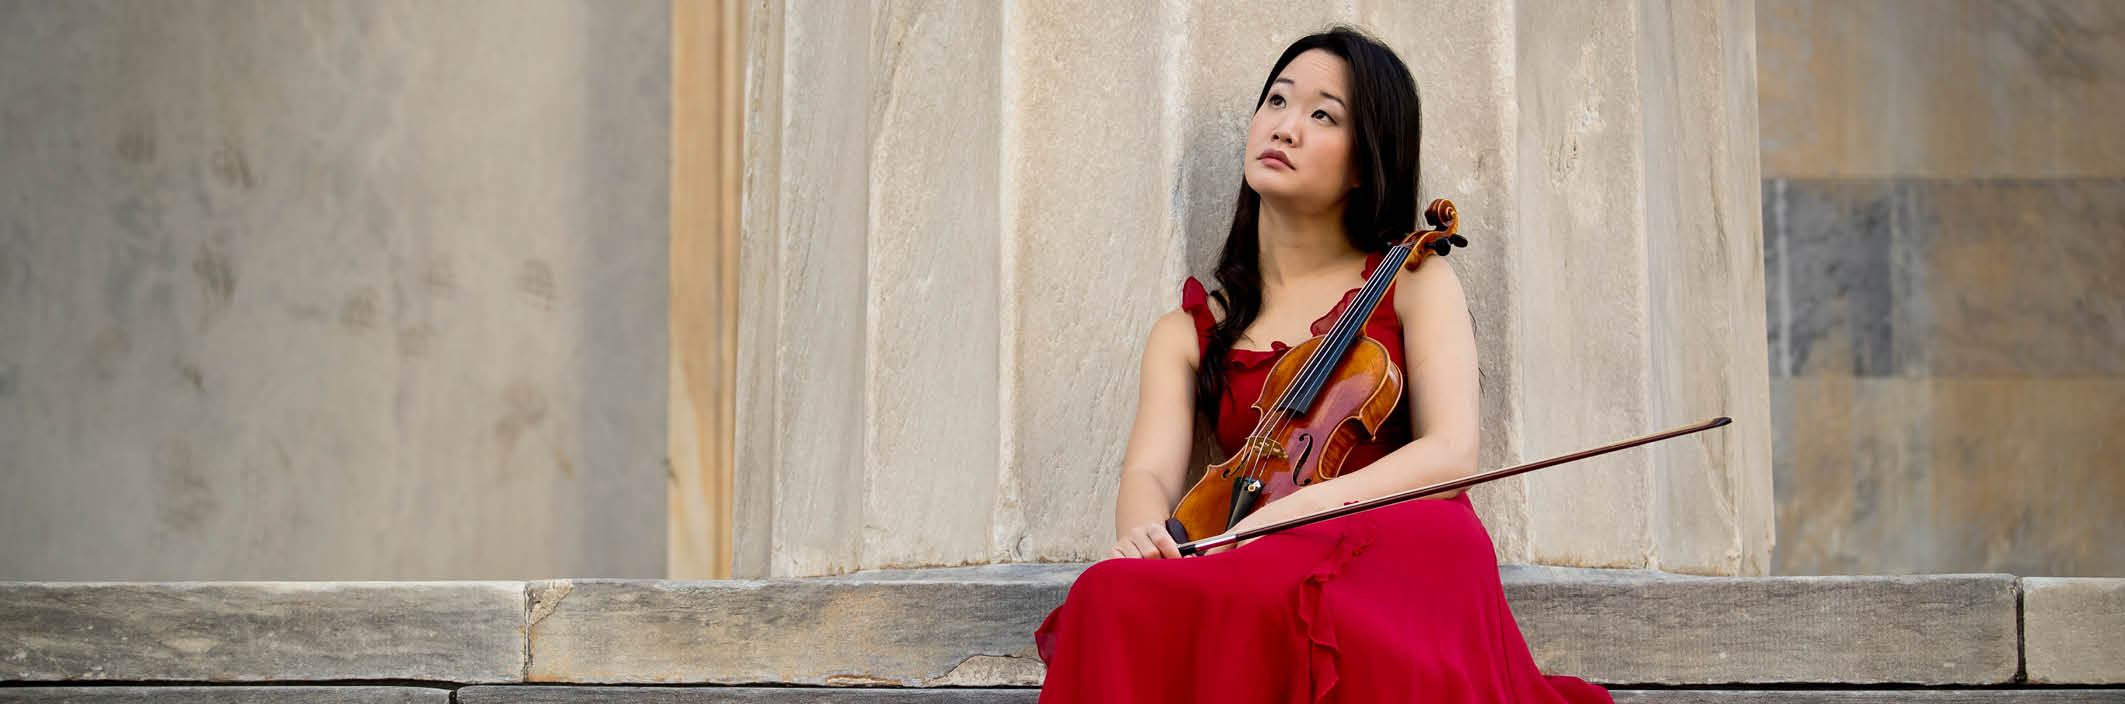 KATIE HYUN  Astral Advancing Classical Music